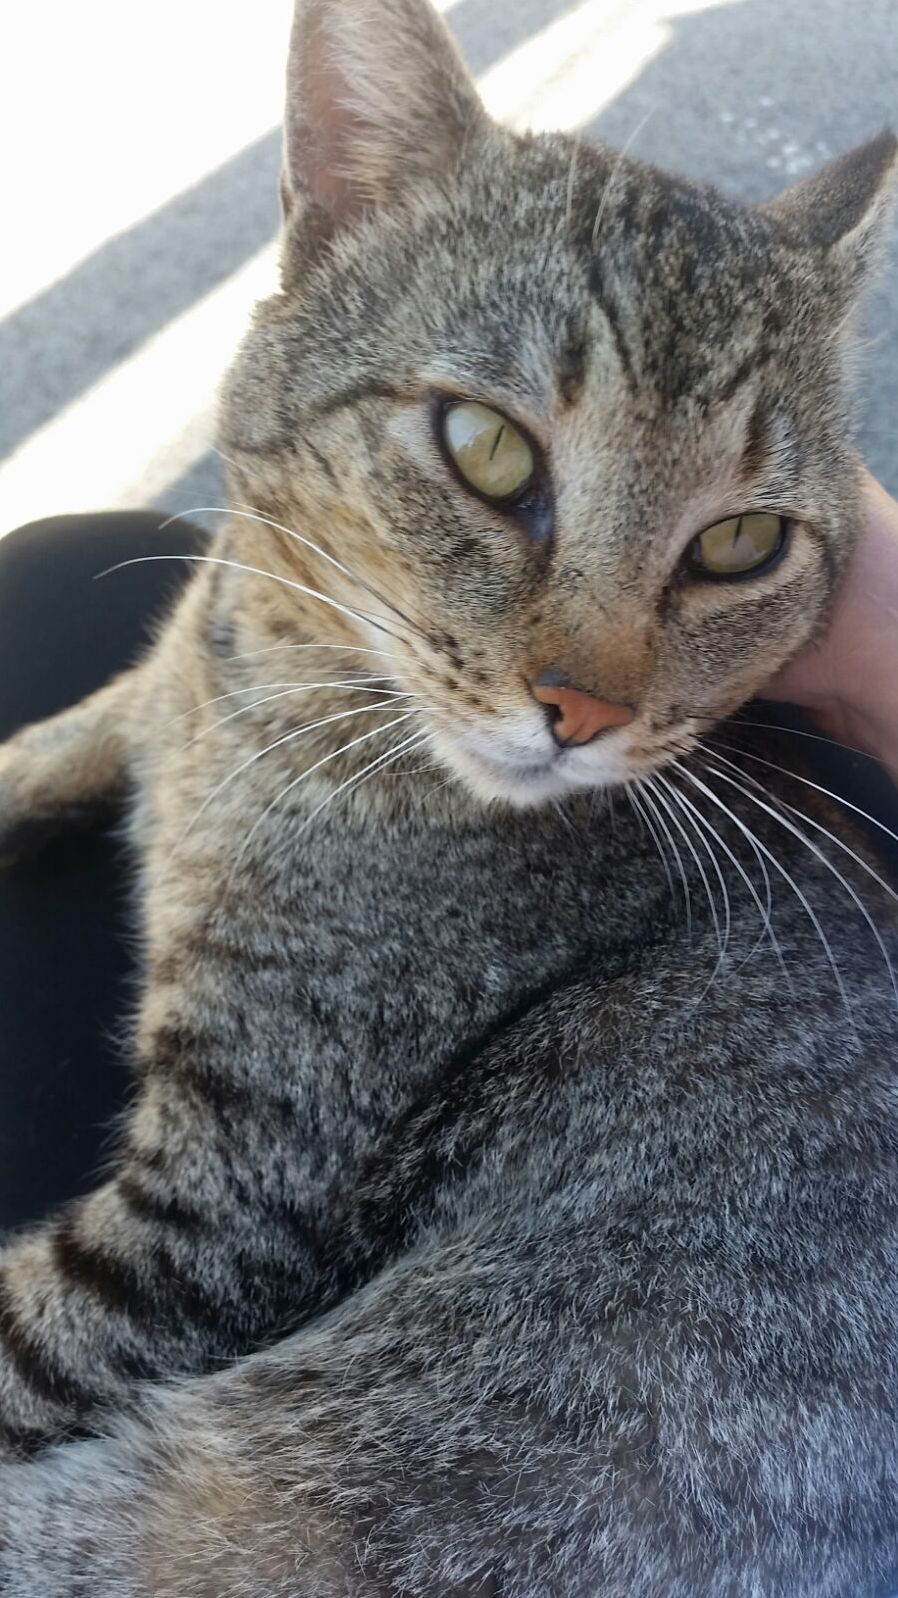 My friend was waiting for a bus and this lovely cat jumped up to her lap.